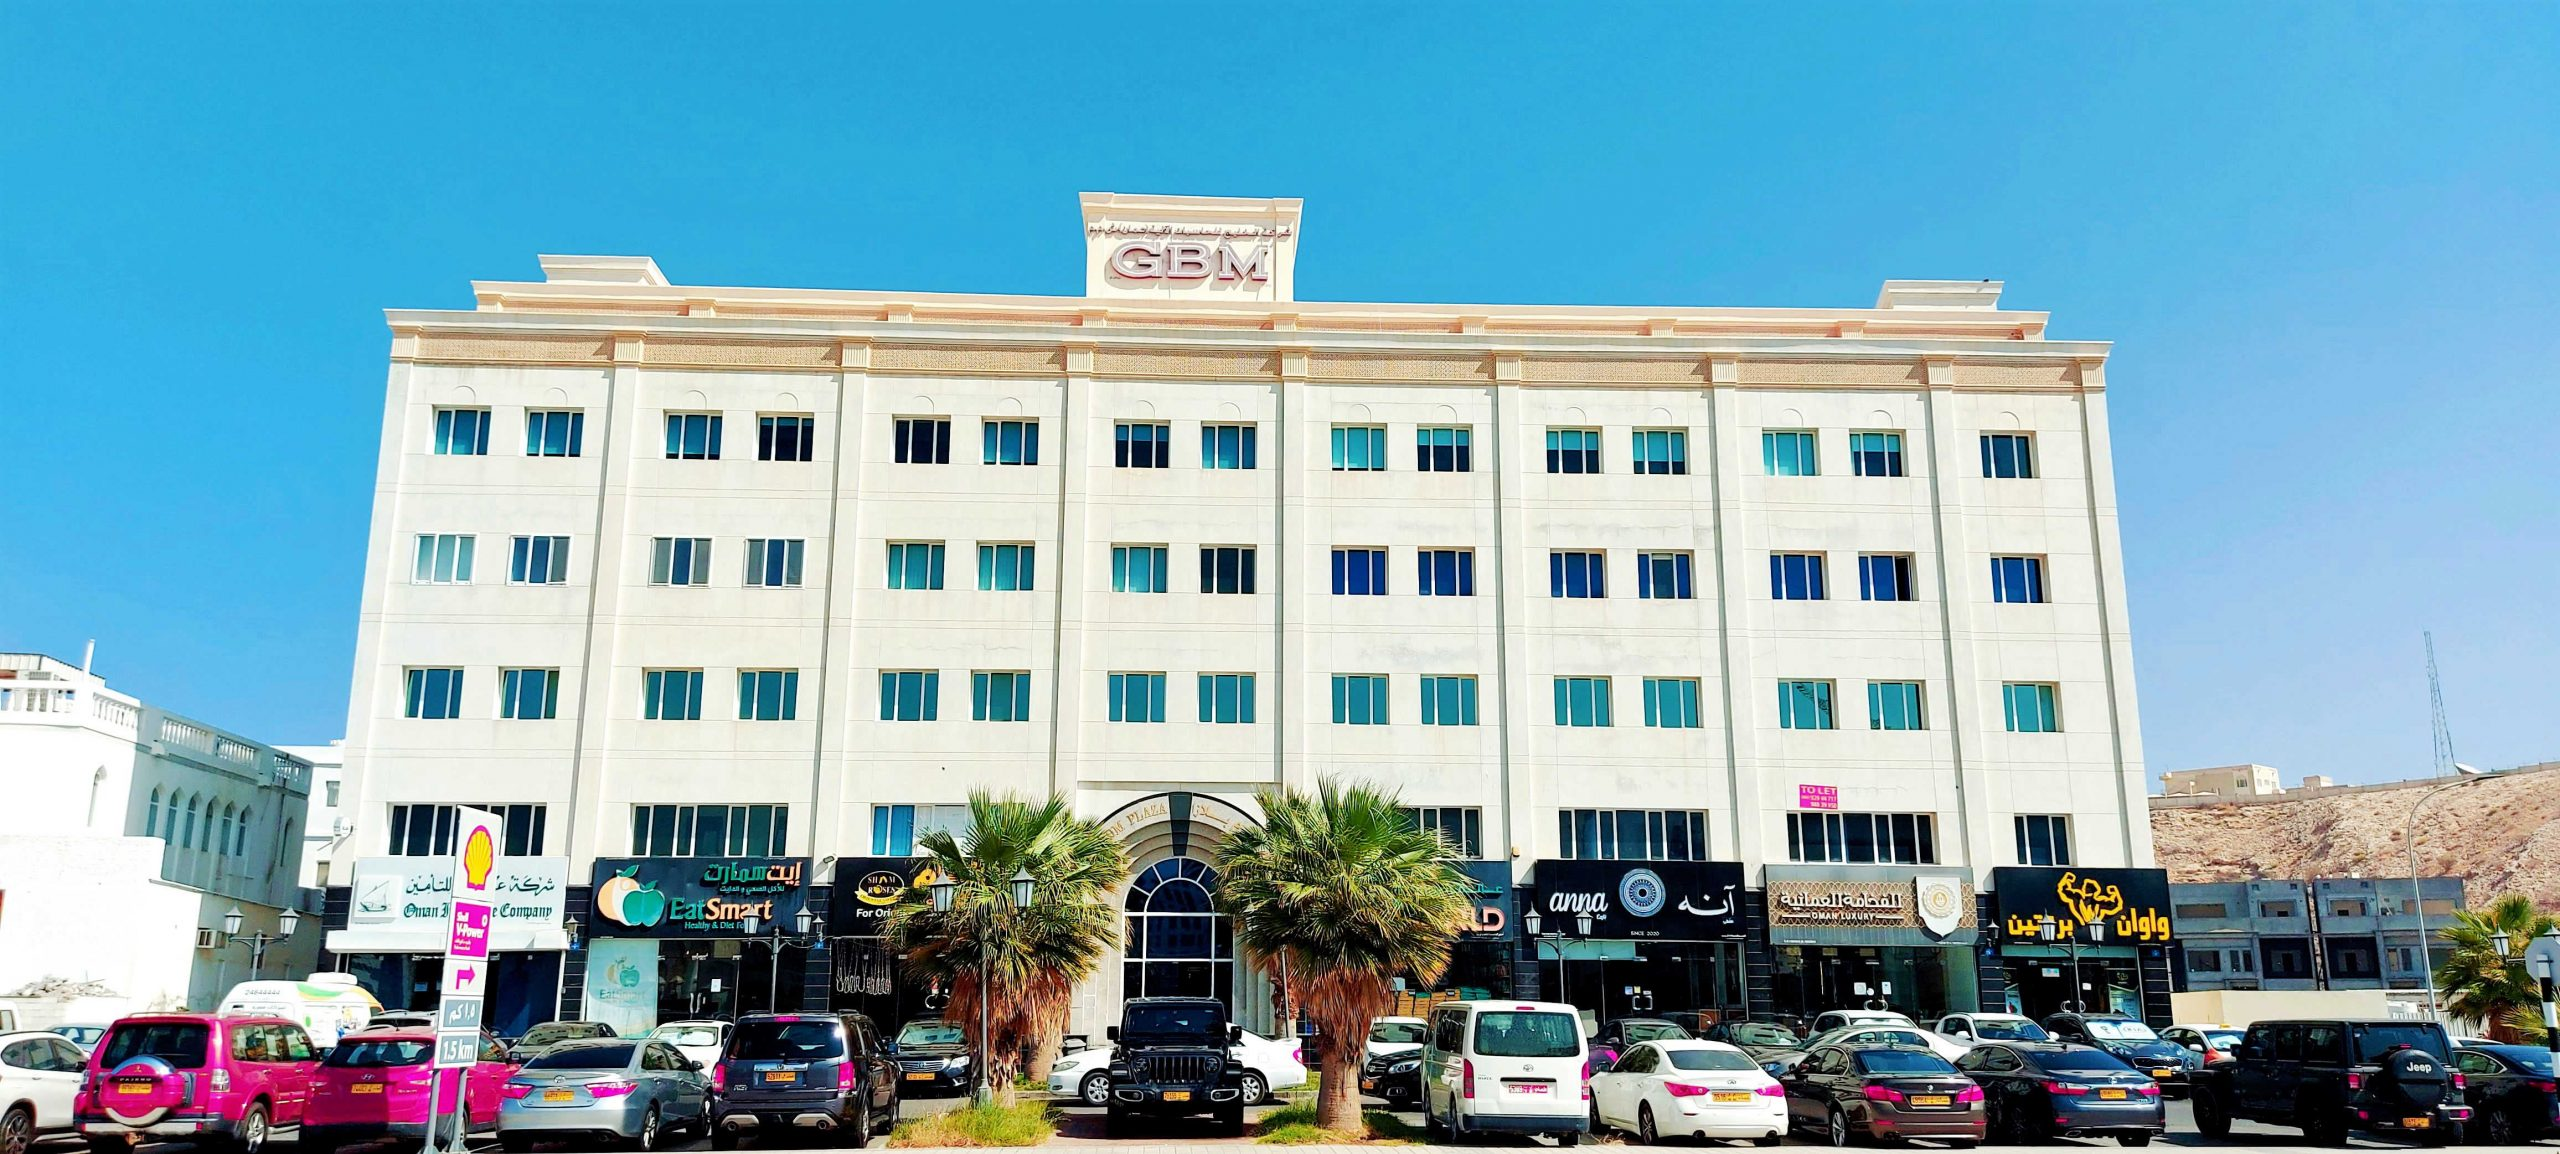 """You are currently viewing GBM Location <br><span class=""""headlin"""">Qurum, Muscat,Oman</span><br><span class=""""headlin2"""">Category: Office Space – For Rent</span>"""